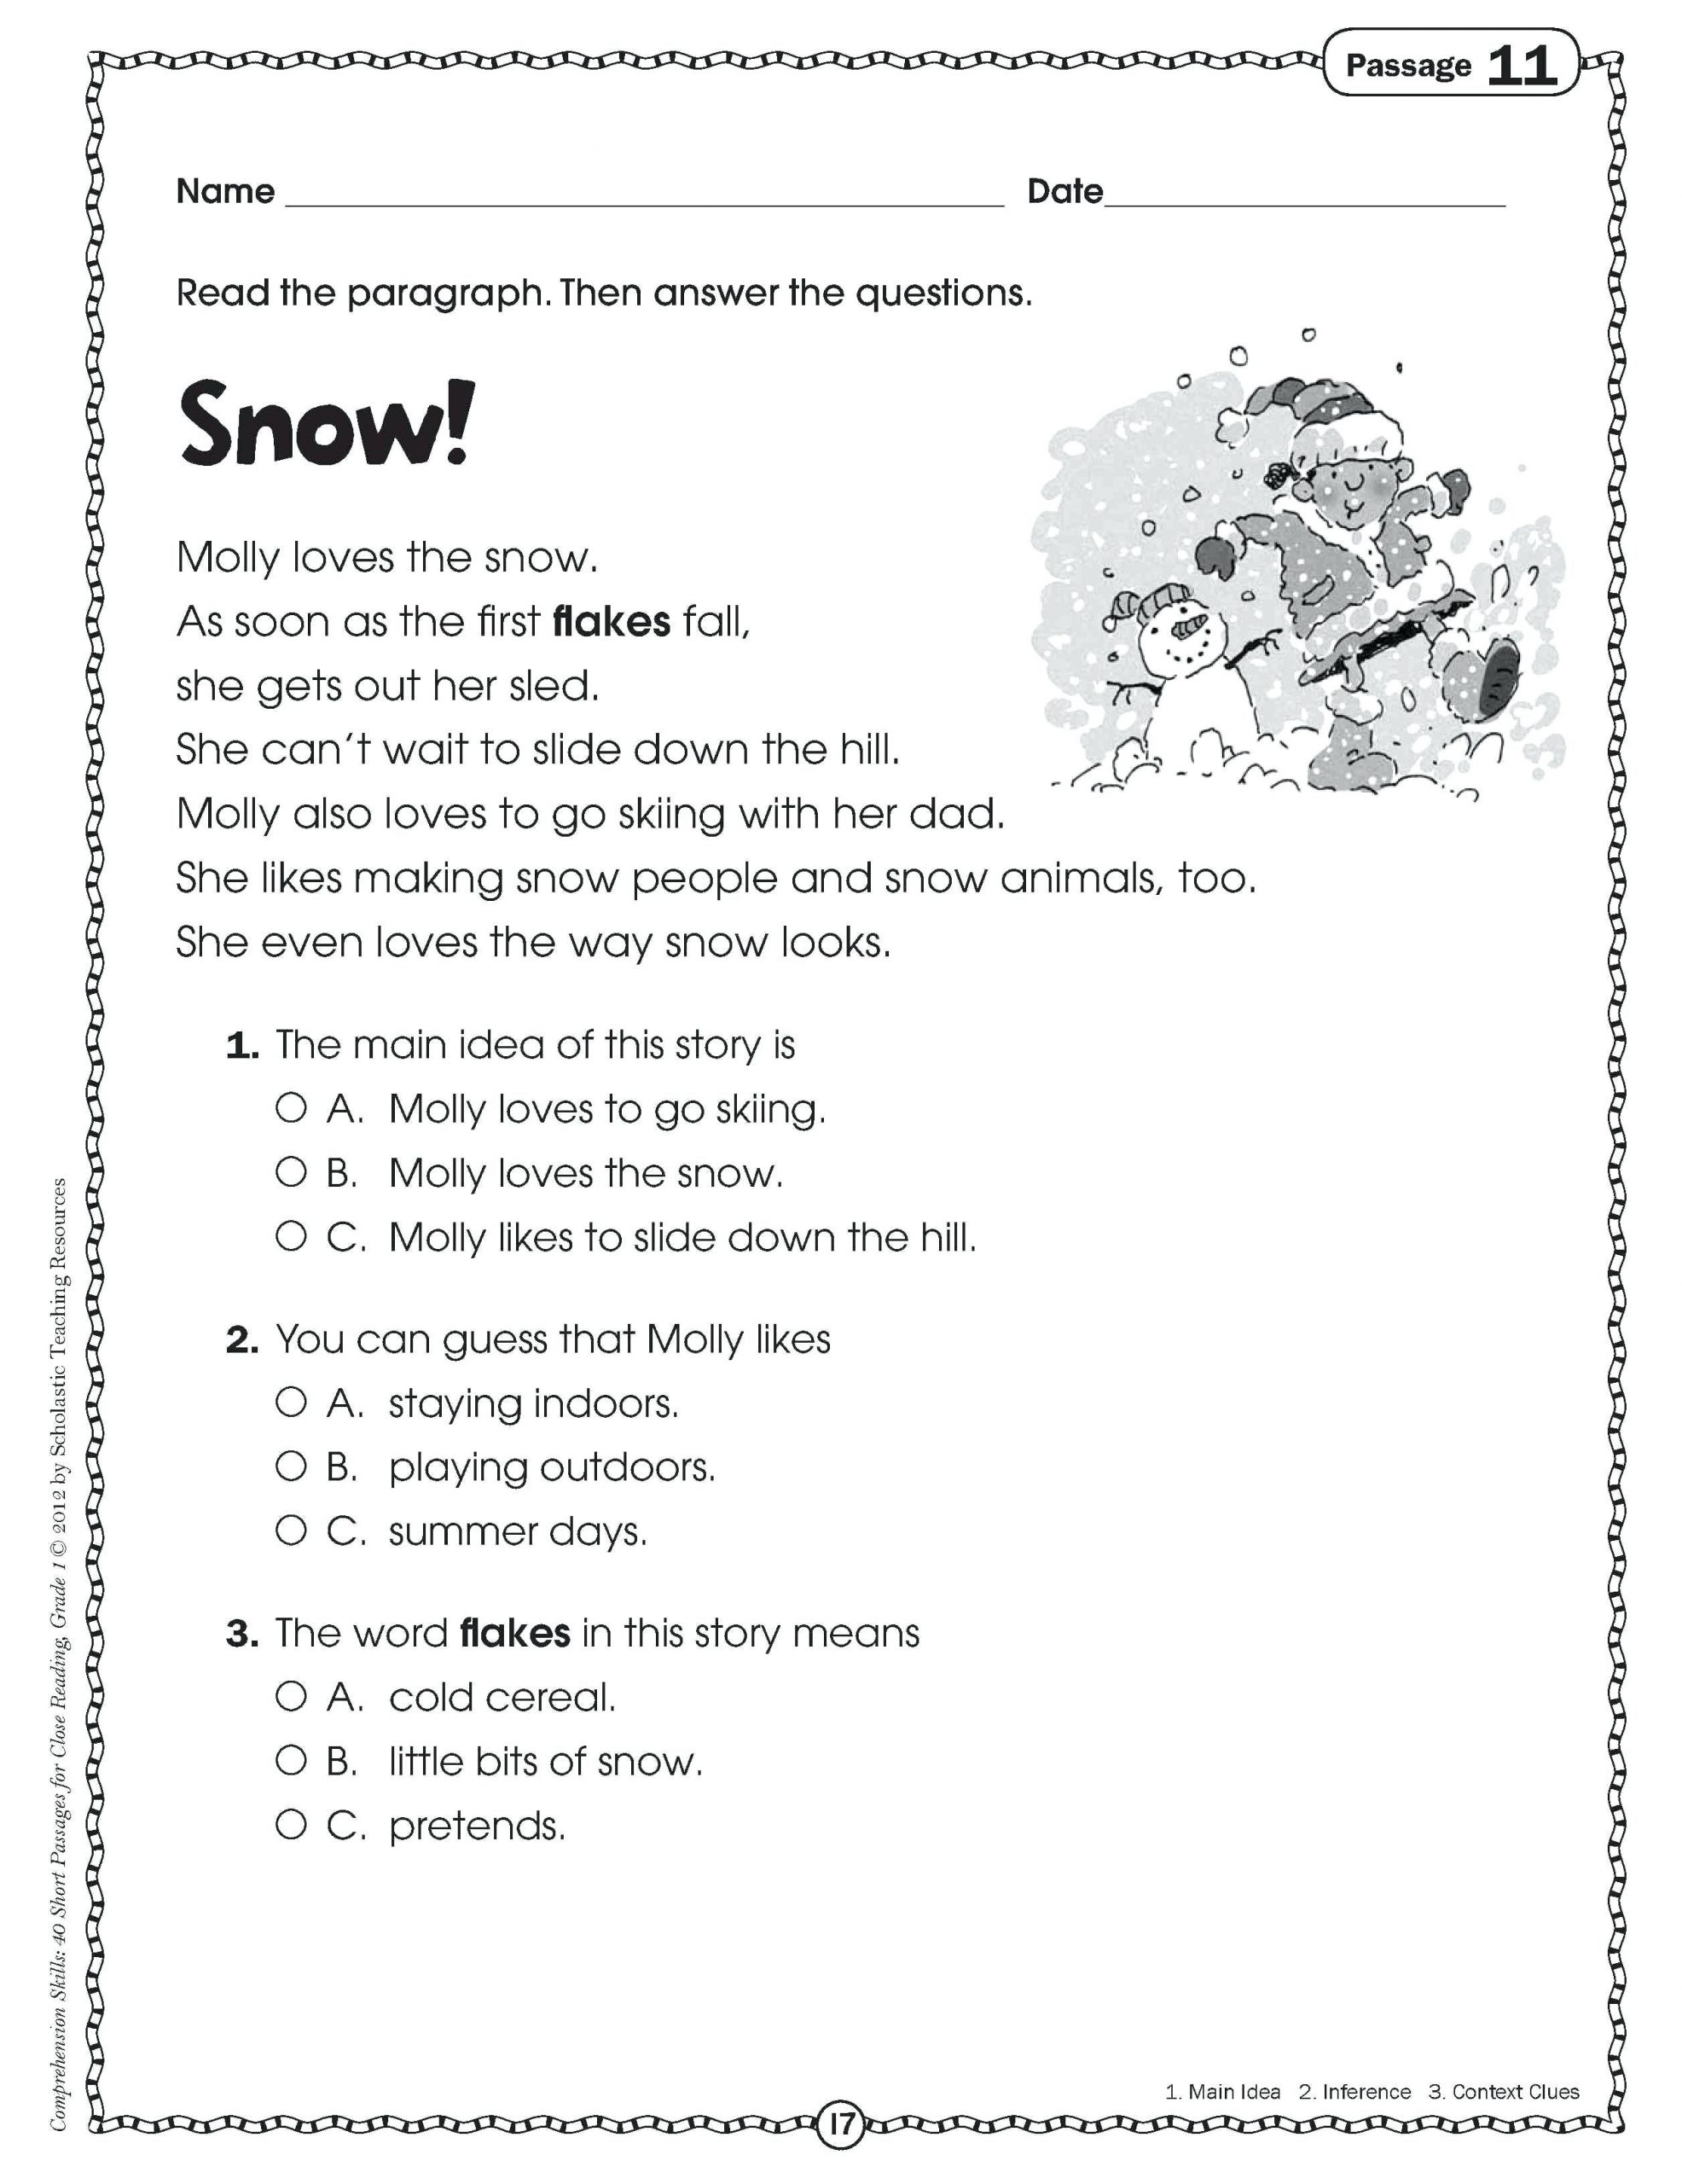 Transition Words Worksheets 4th Grade Main Idea Worksheets 4th Grade to Printable Math Worksheet